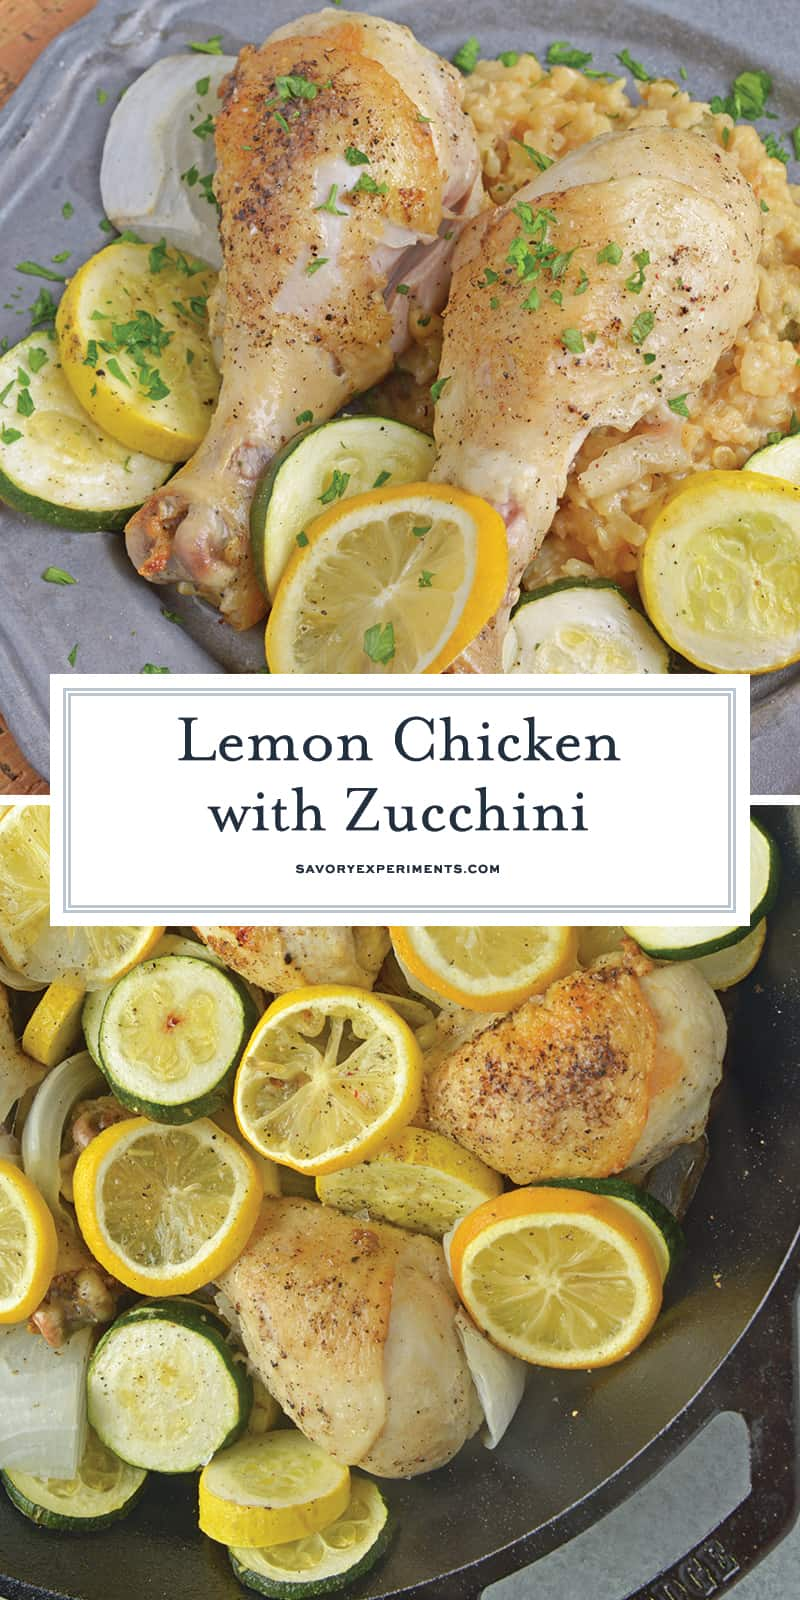 Lemon Chicken with Zucchini is a meal with classic, all-American flavors. Cast iron recipes are great since everything gets cooked in the same pan! #lemonchickenrecipe #castironrecipes www.savoryexperiments.com